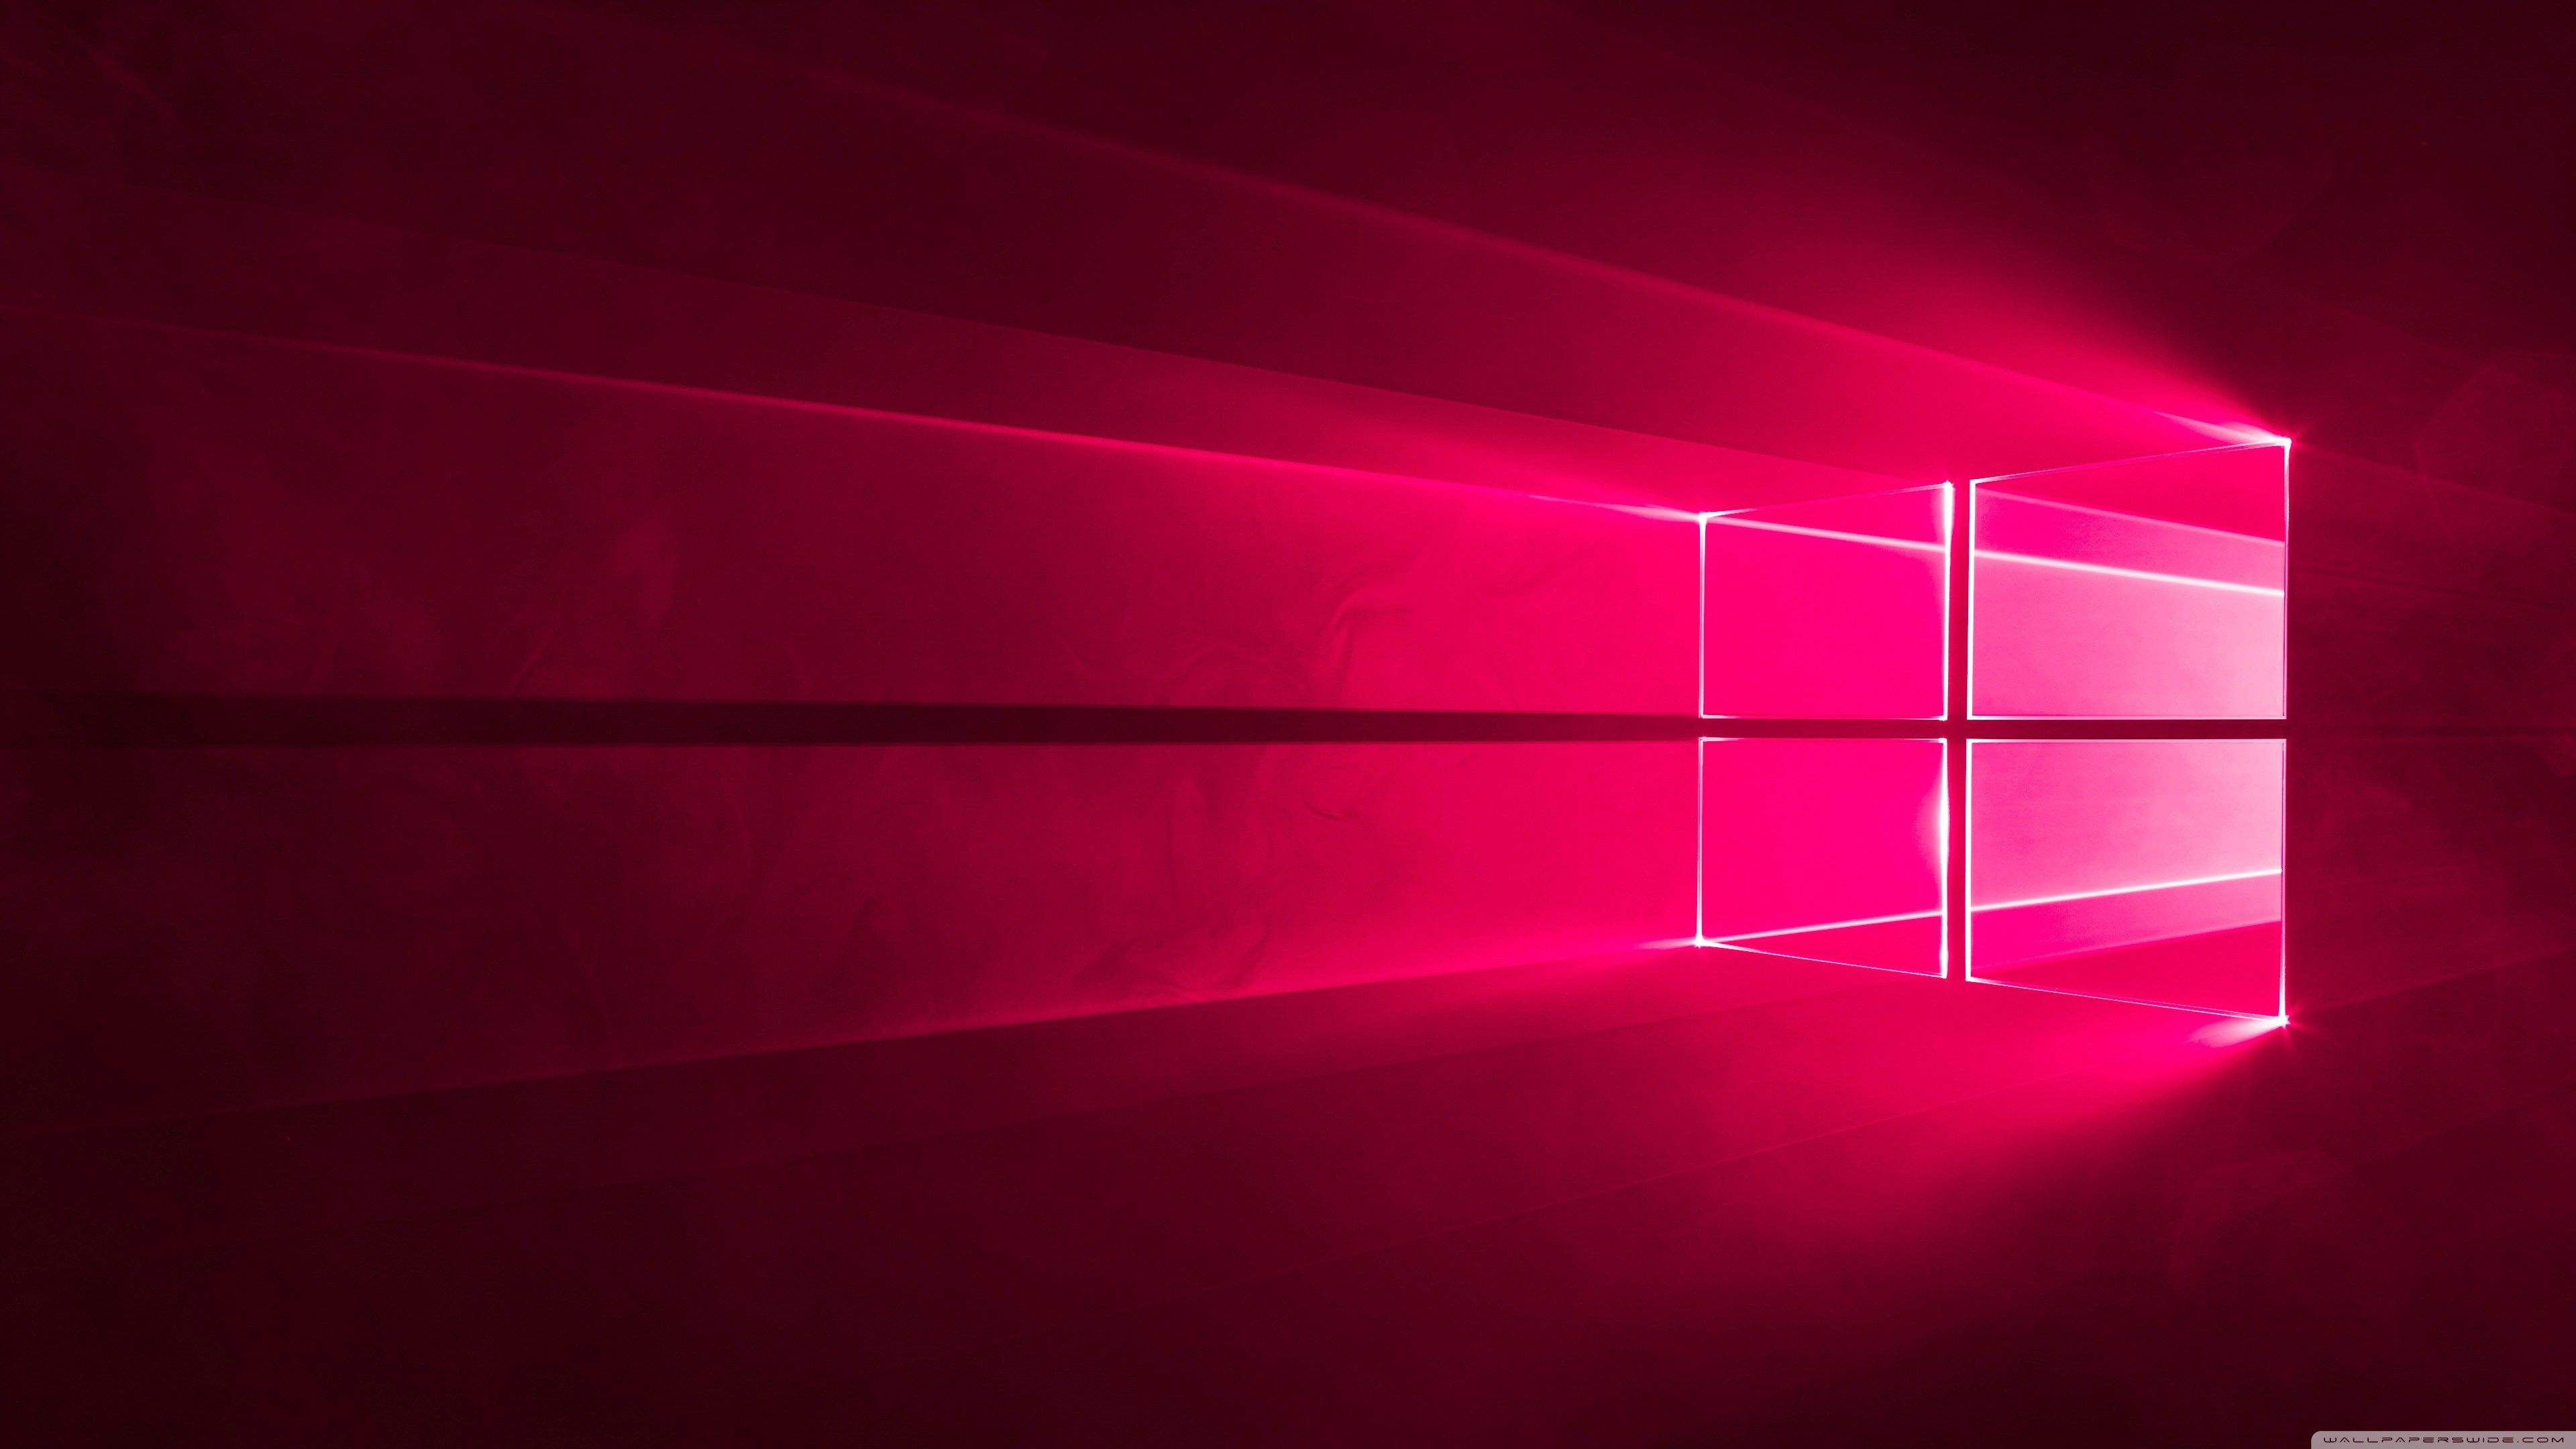 Pink Windows Wallpapers Top Free Pink Windows Backgrounds